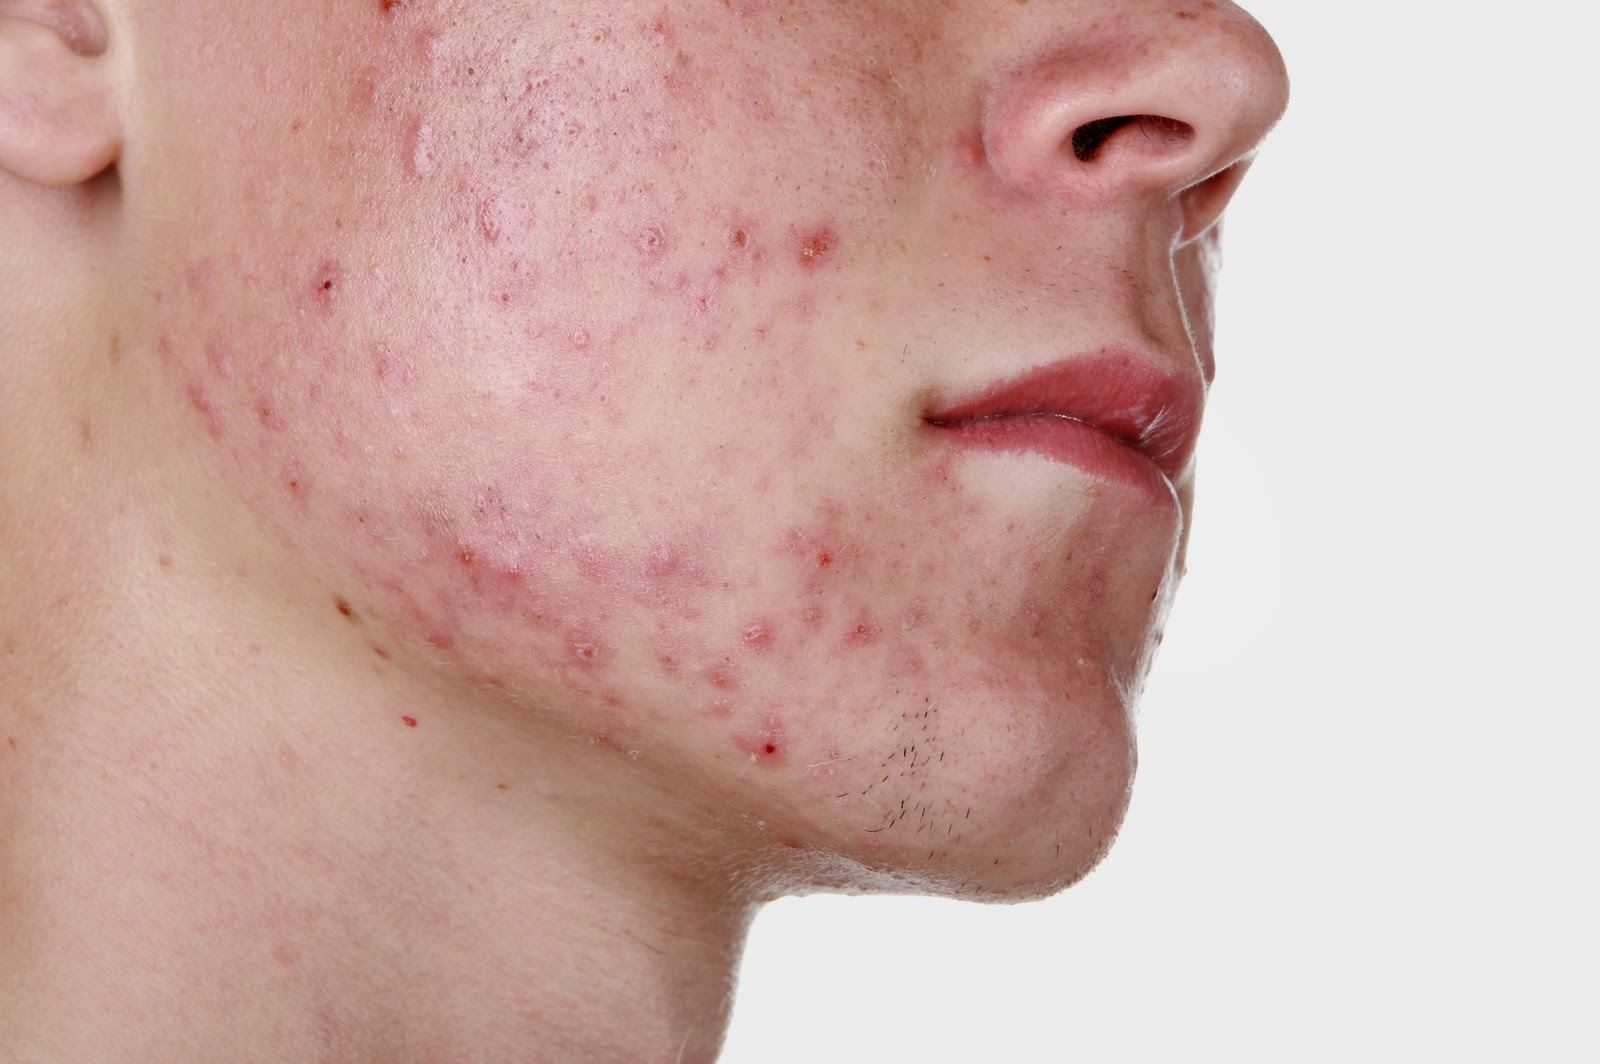 12 Foods That Trigger Acne Breakout And 10 Natural Remedies To Banish Pimples